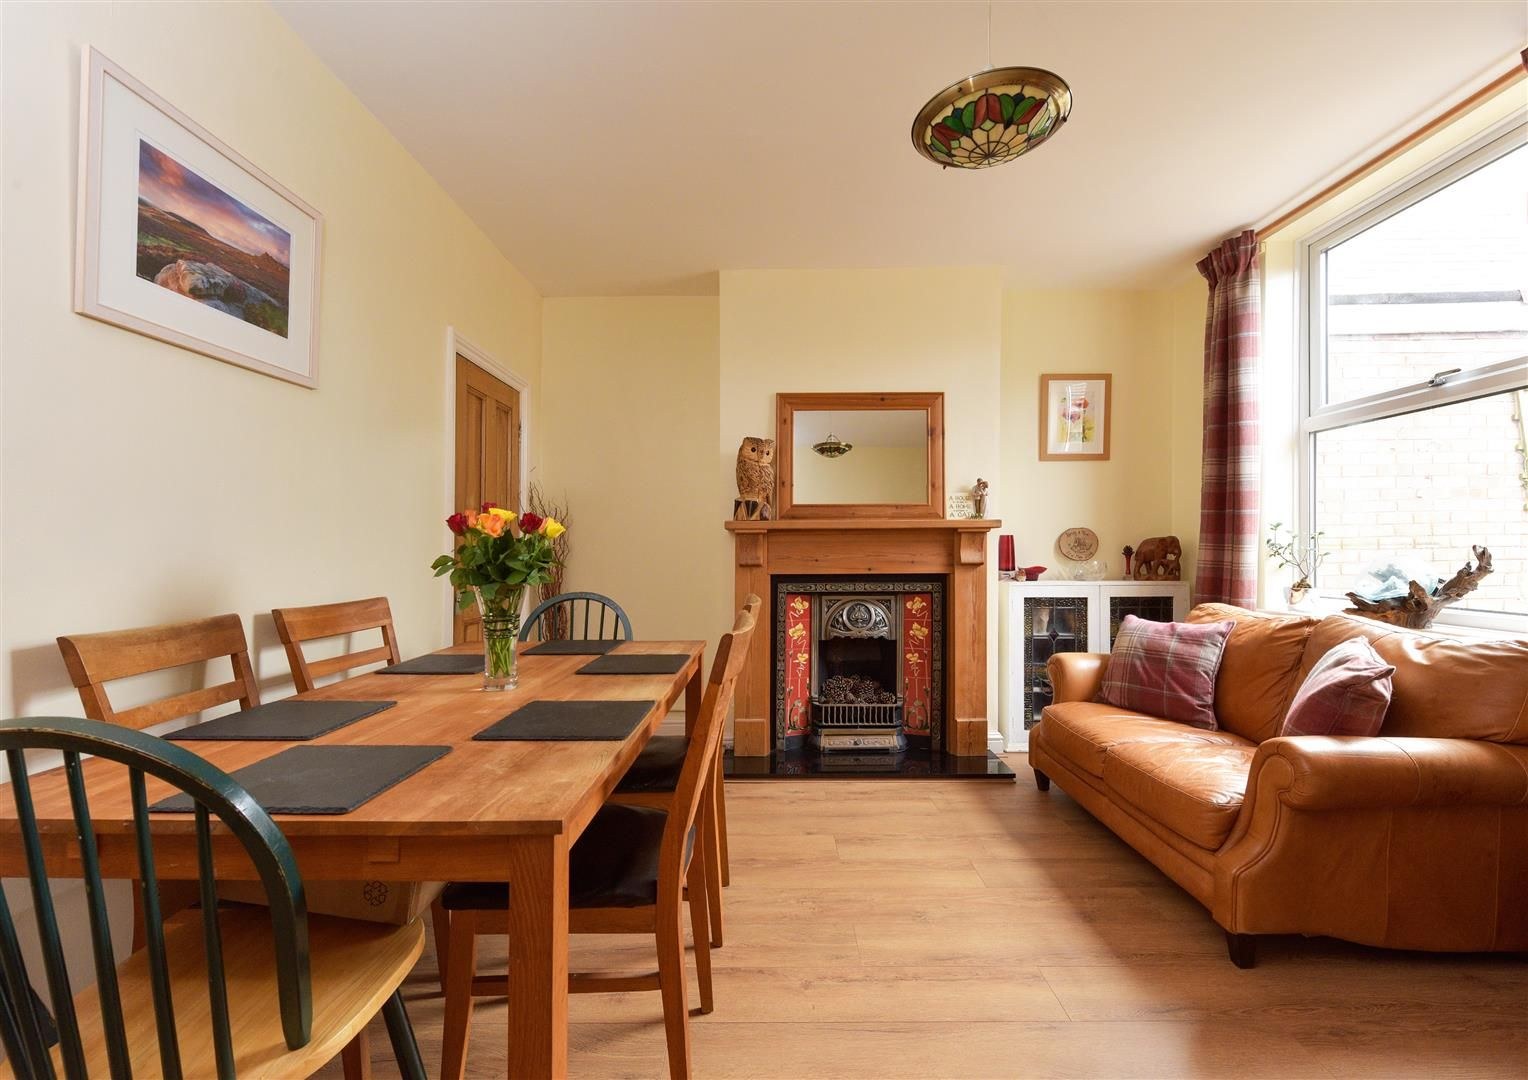 3 bed end-of-terrace for sale 5